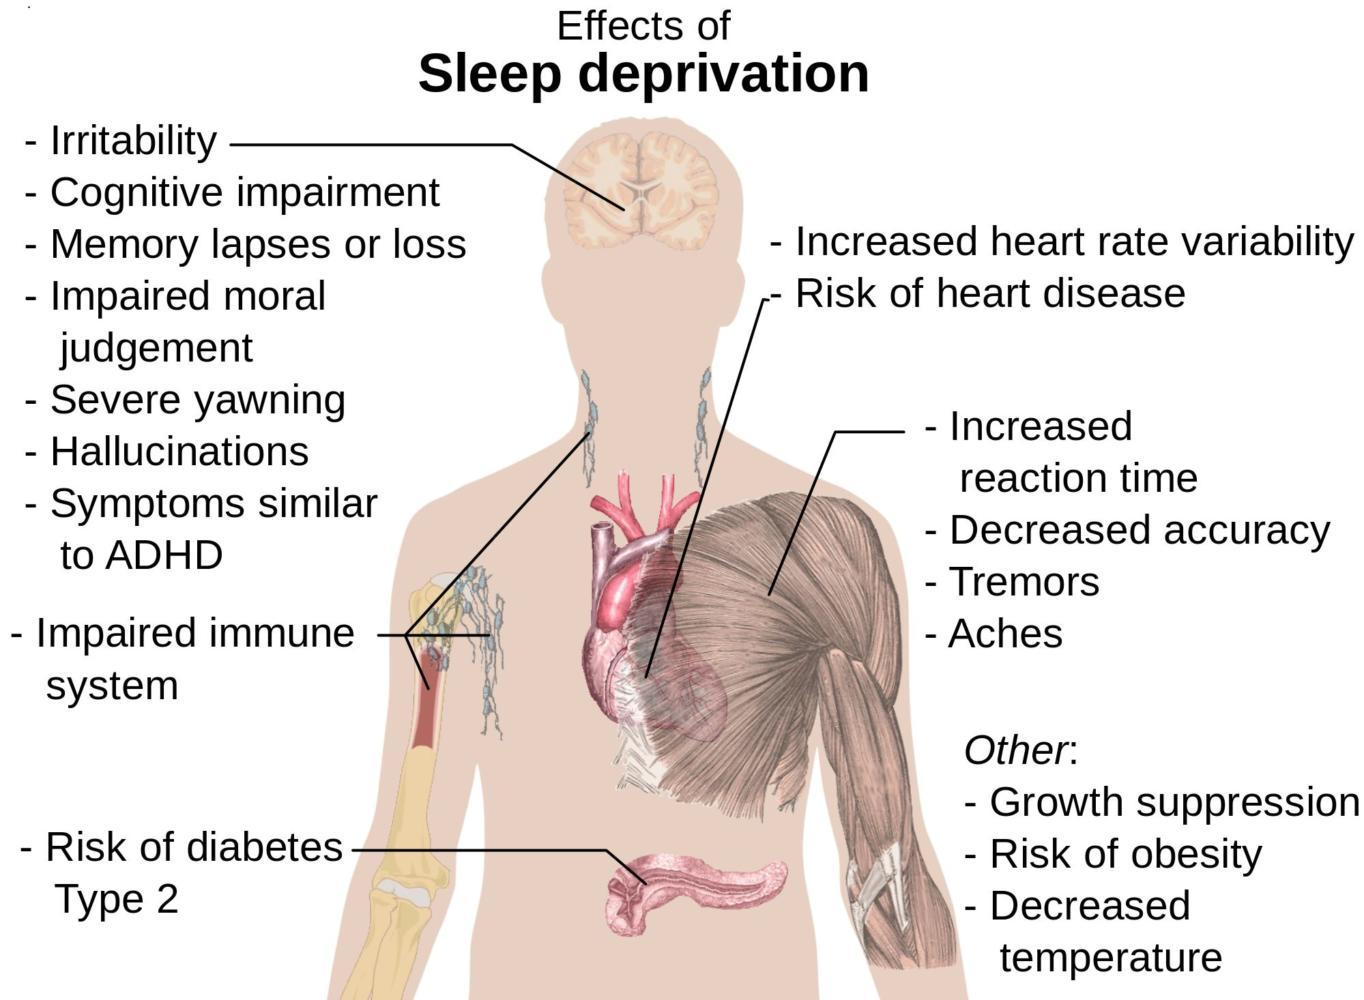 This diagram shows the several scary effects that prolonged sleep deprivation can have on individuals.